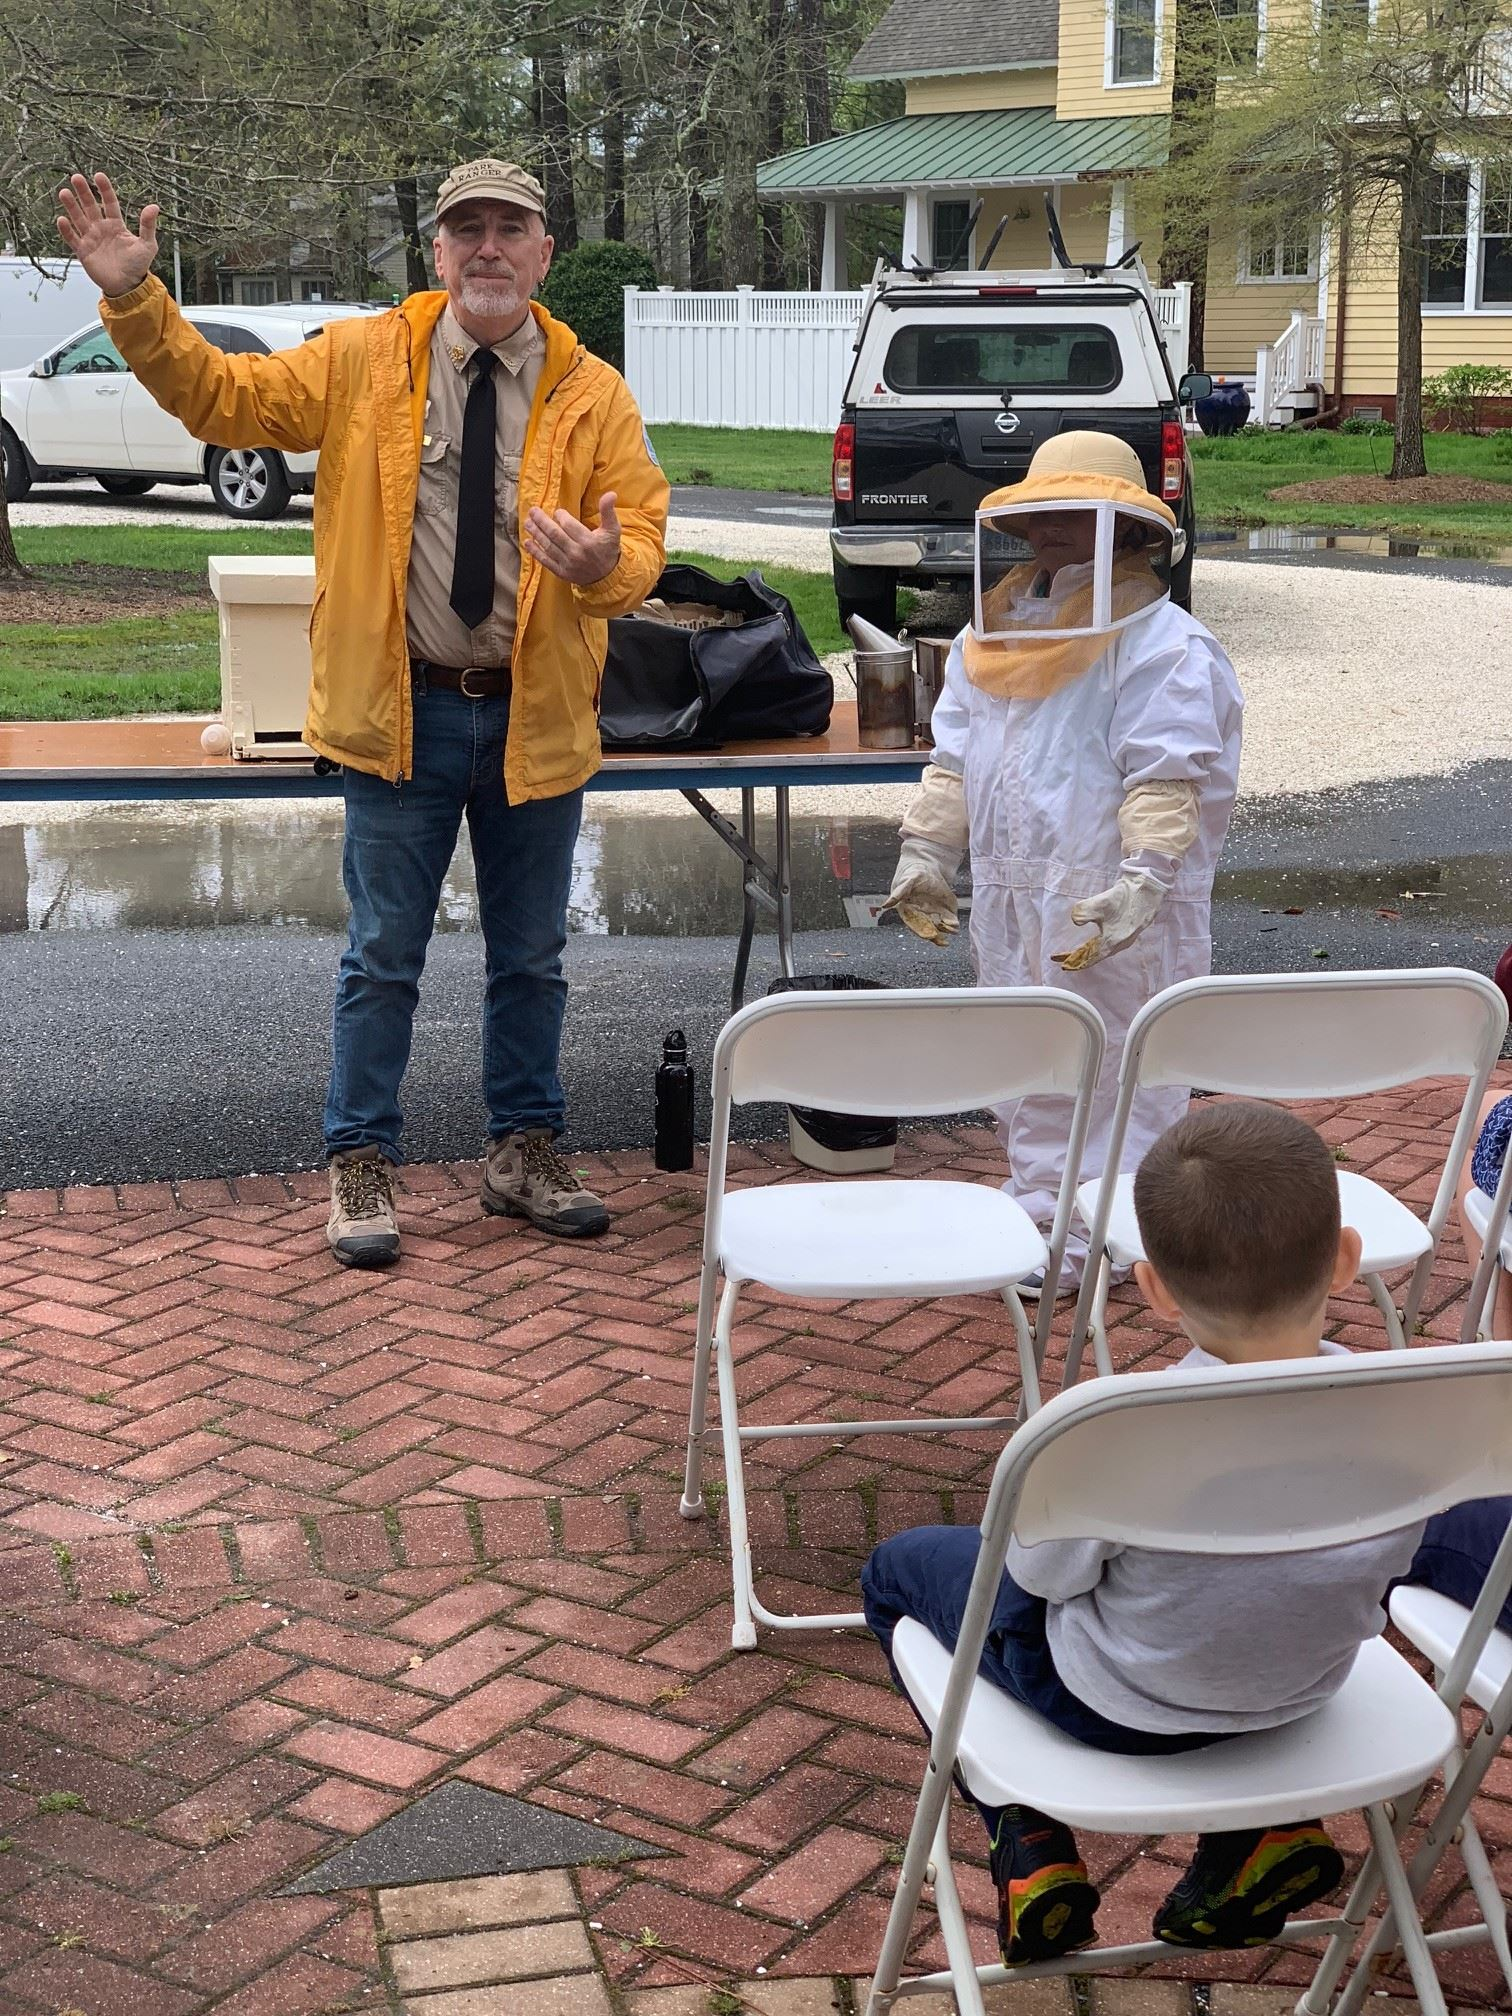 Park Ranger Bob and his Bees